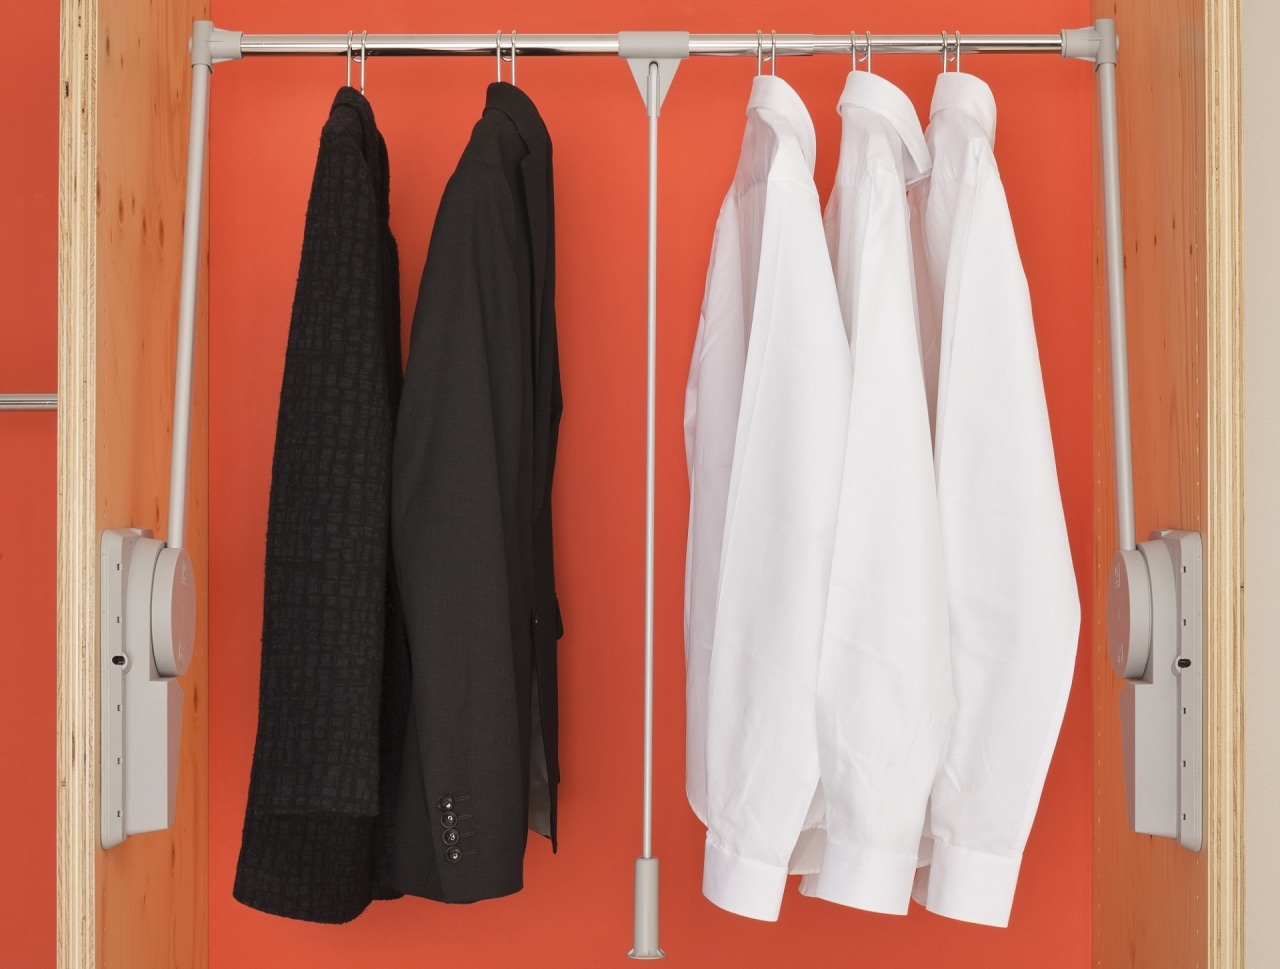 Use Ambos lifts in the upper parts of closet, clothes hanger, outerwear, room, red, white